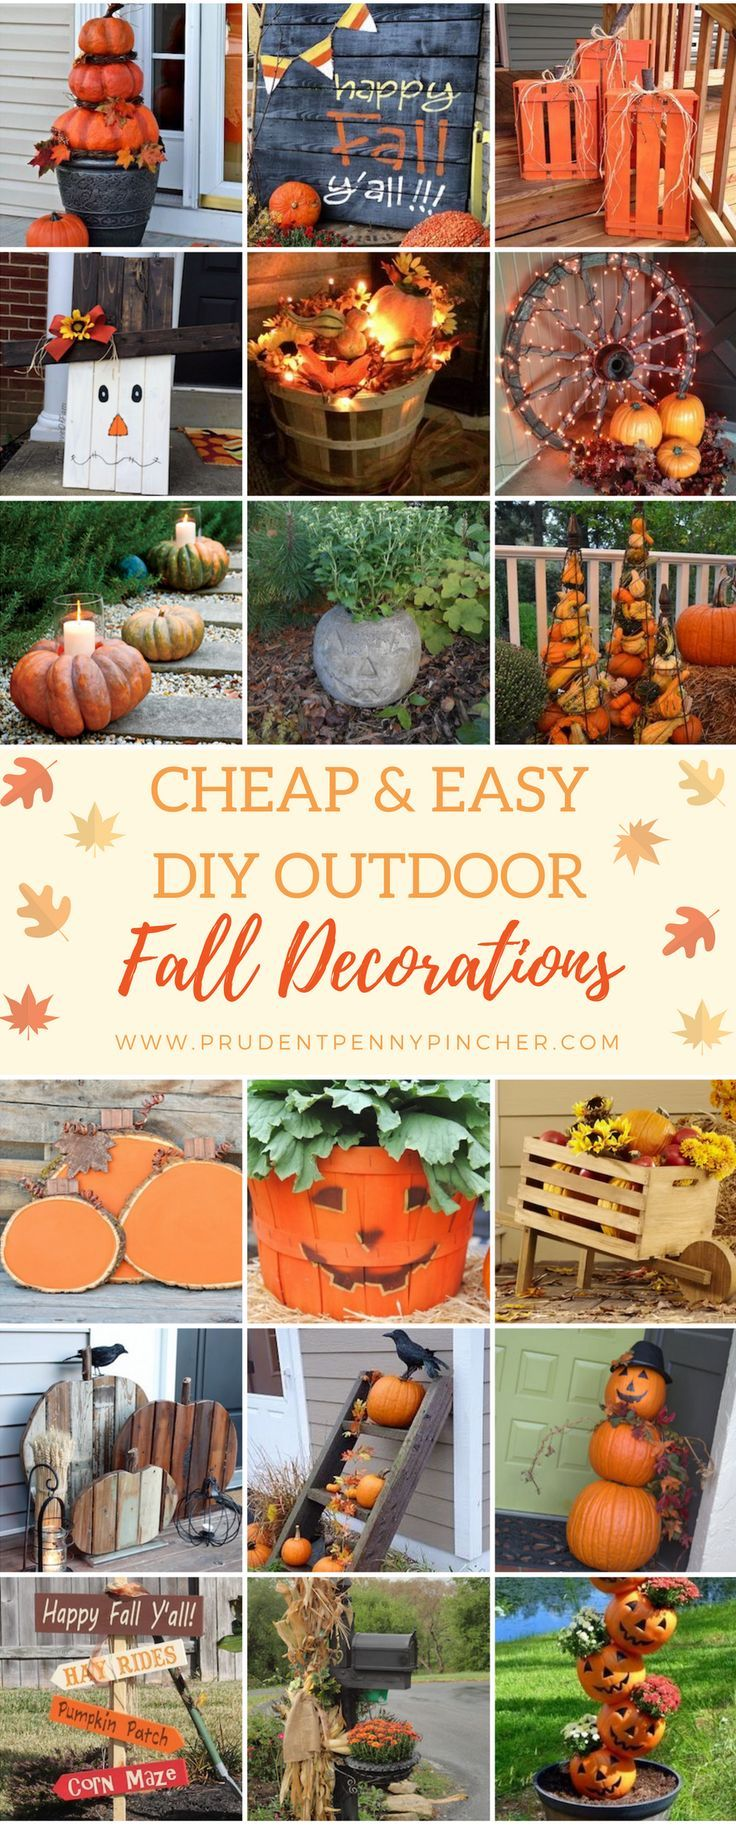 50 Cheap And Easy Diy Outdoor Fall Decorations Fall Crafts